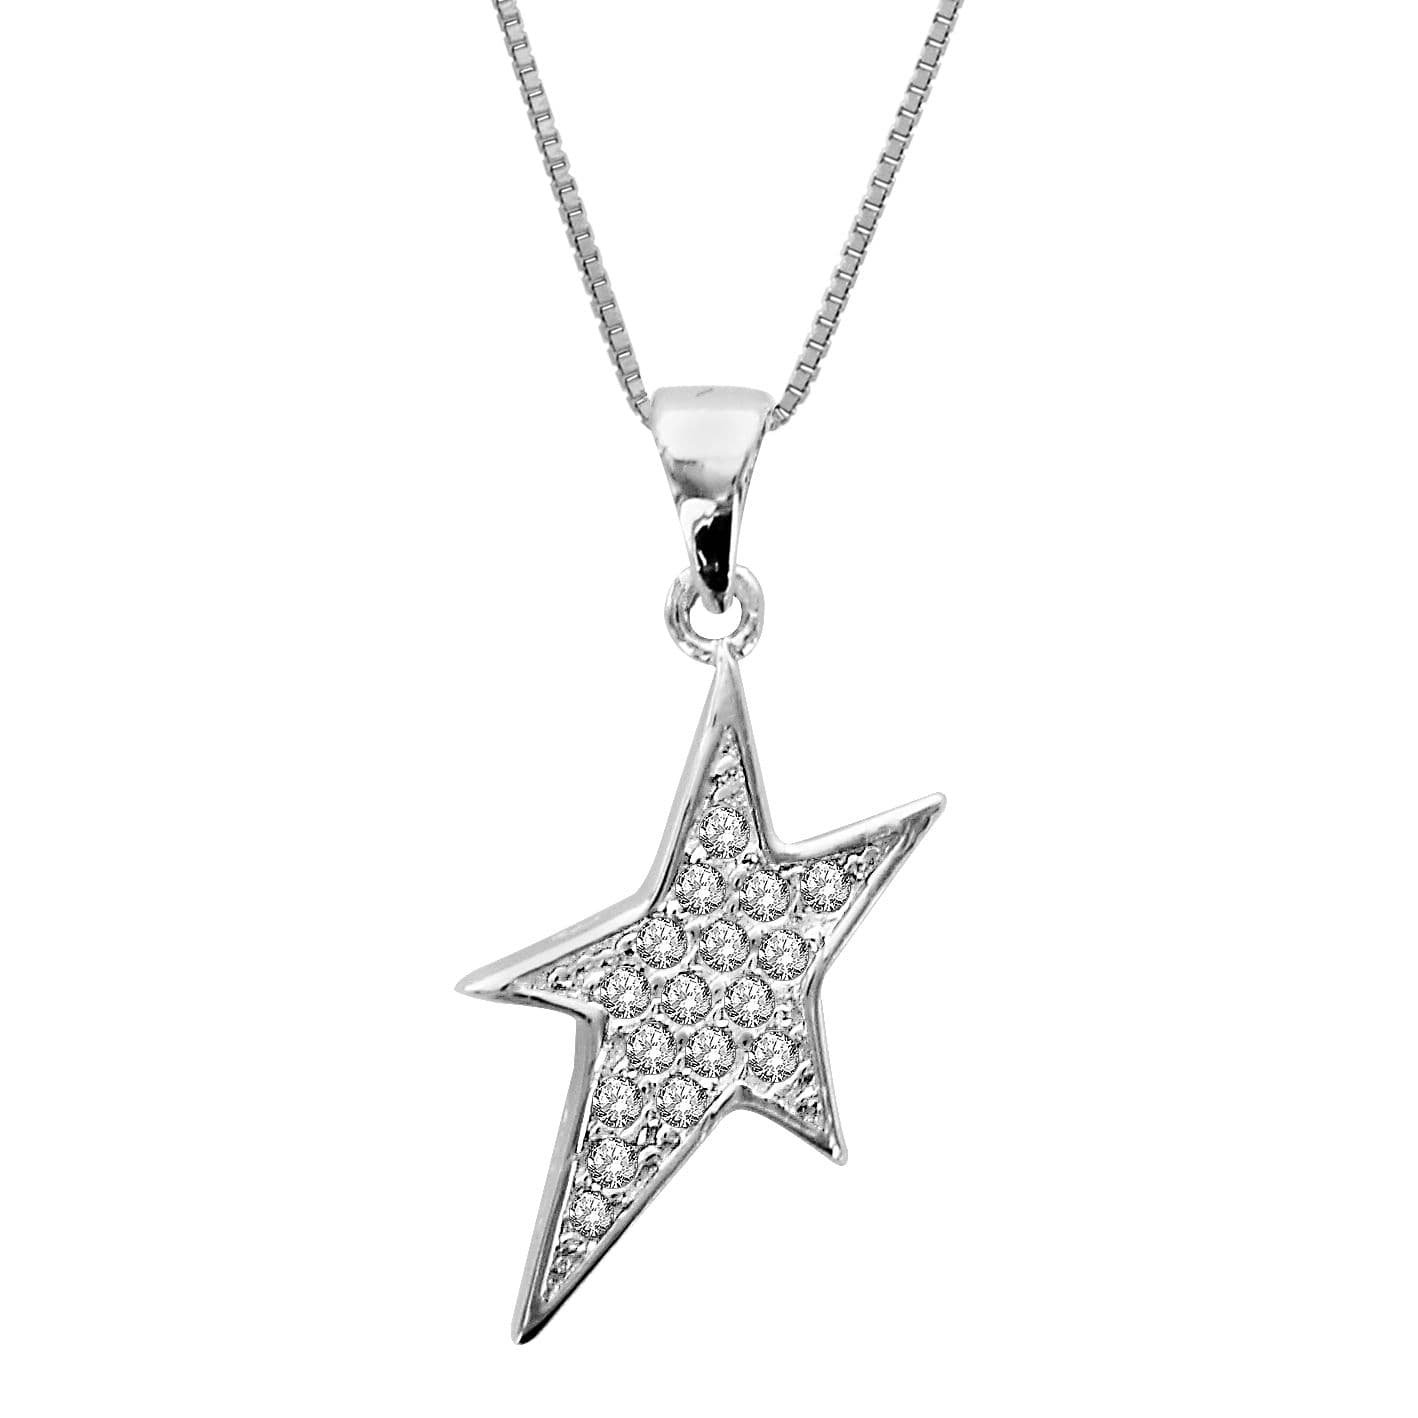 925 Sterling Silver Star Pendant with Cubic Zirconia So Chic Jewels